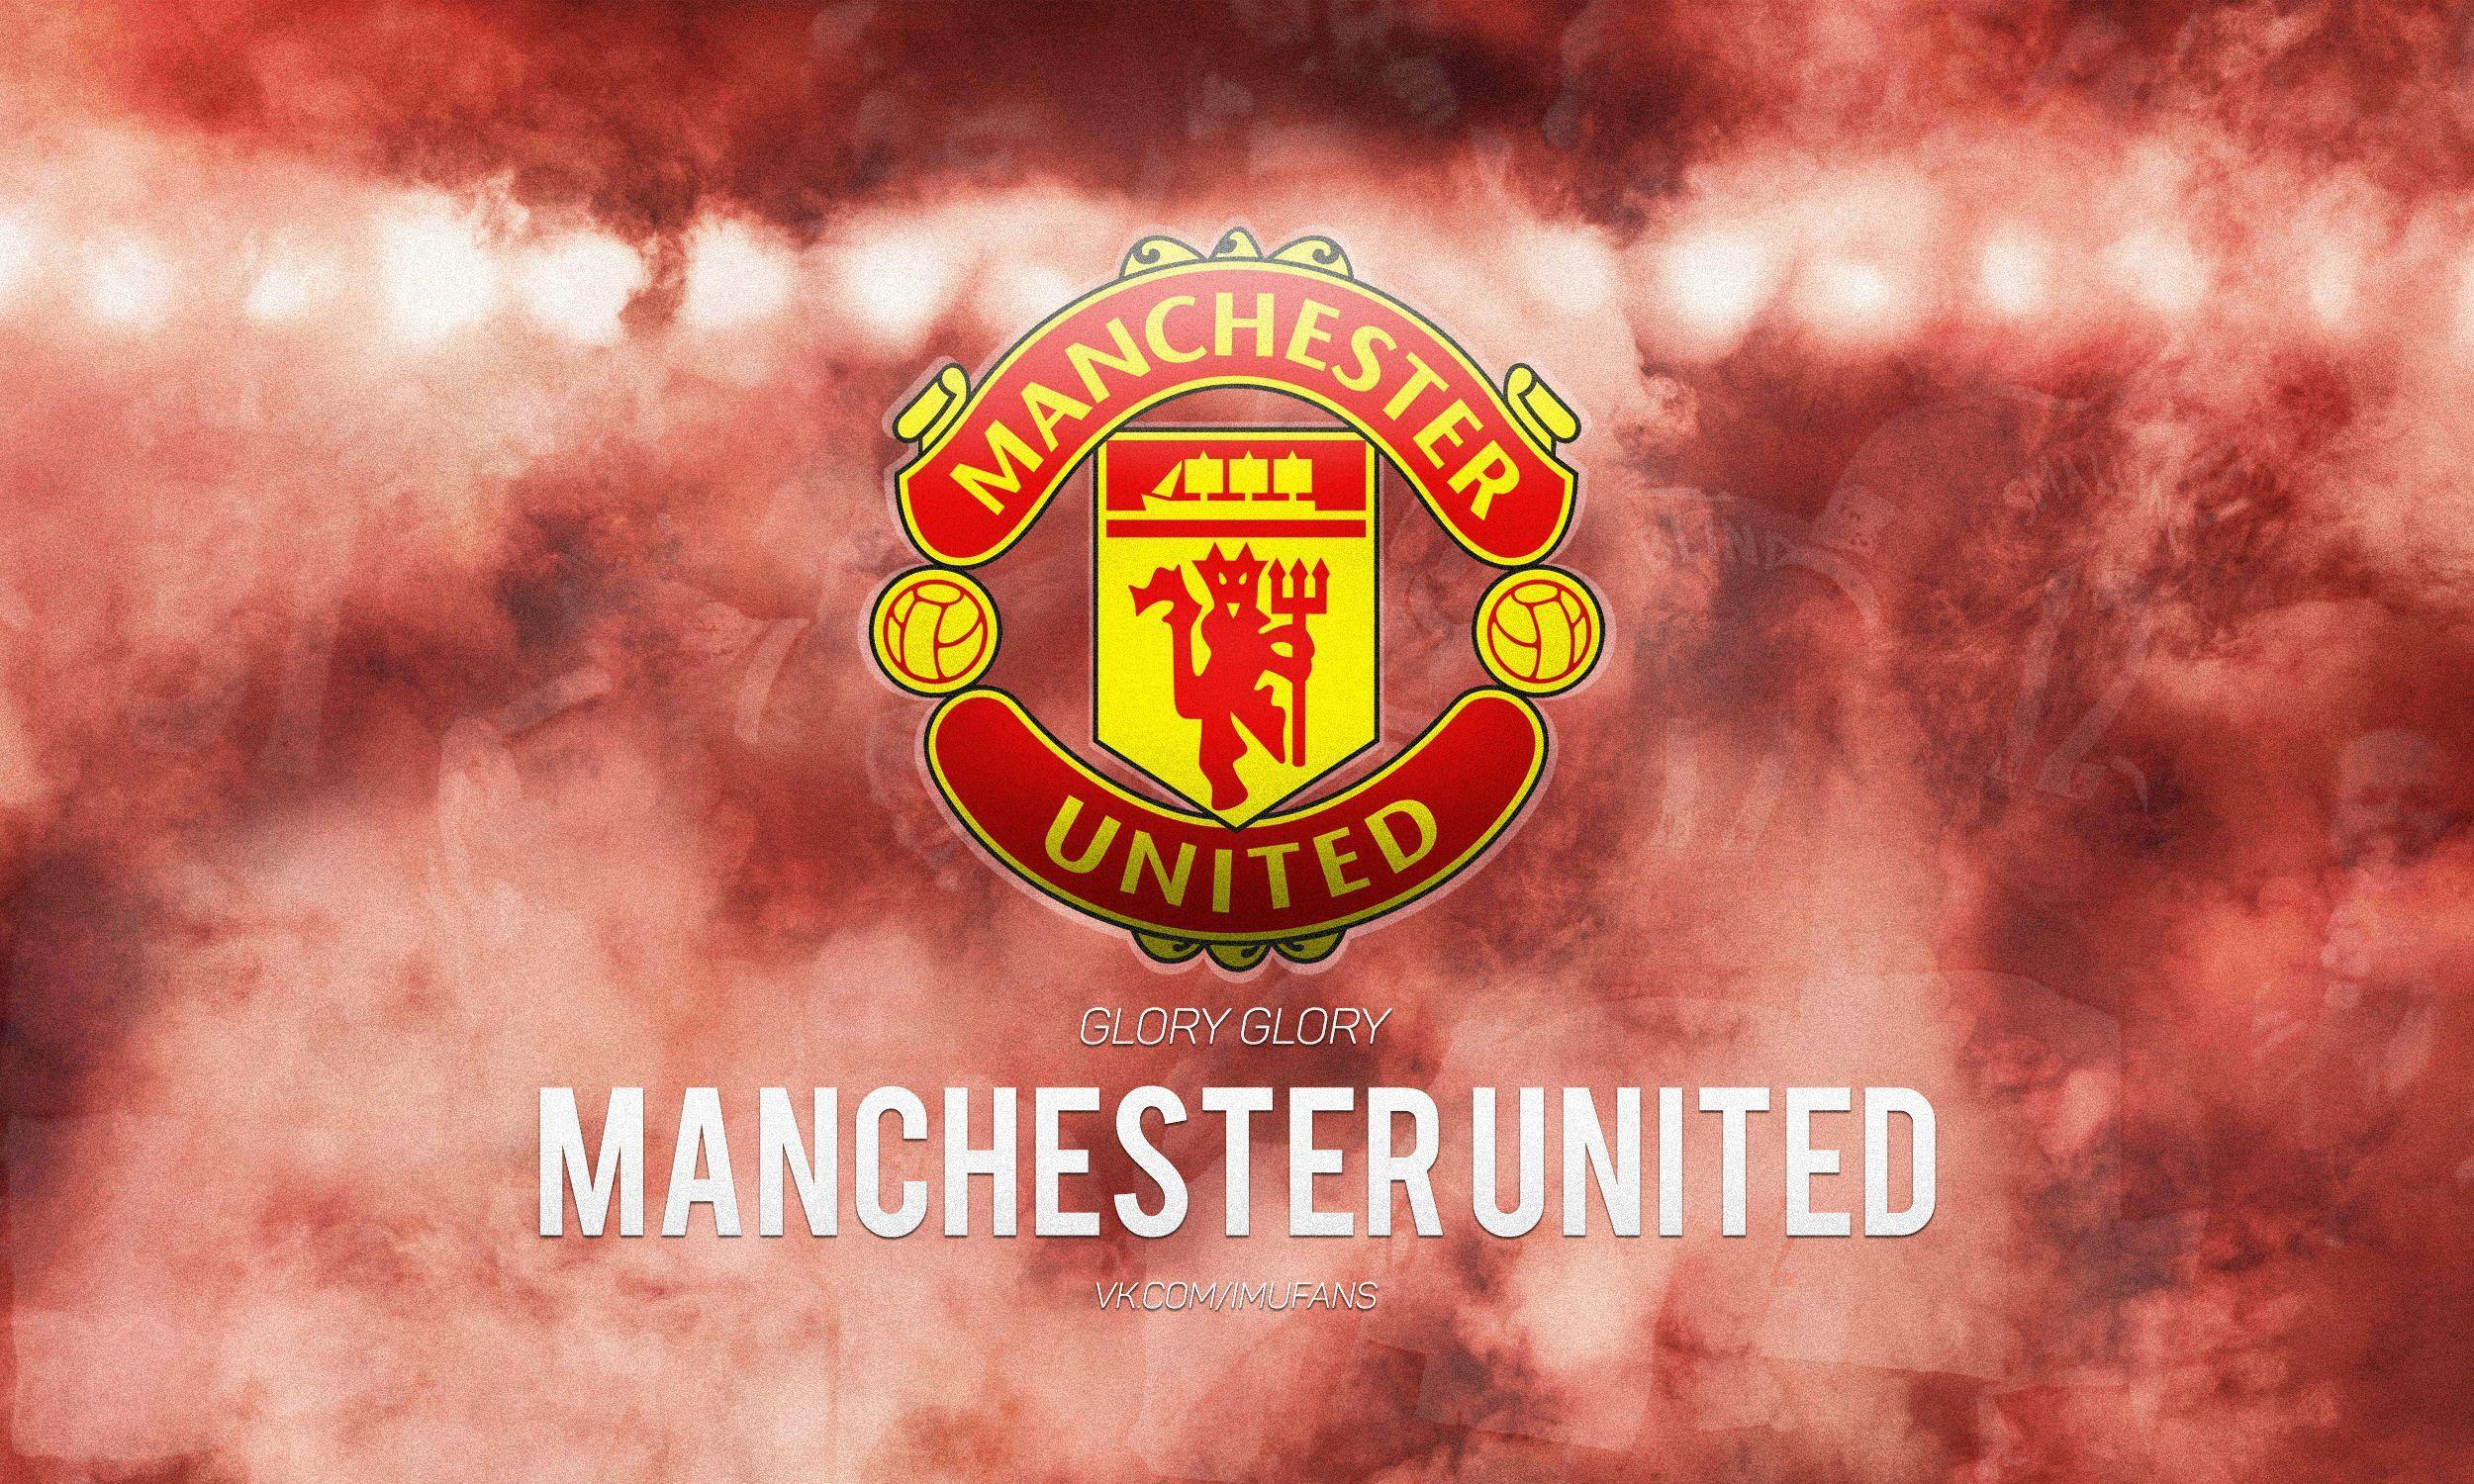 Manchester United Hd Wallpapers 2016 Manchester United Wallpapers 3d 2016 Wallpaper Cave